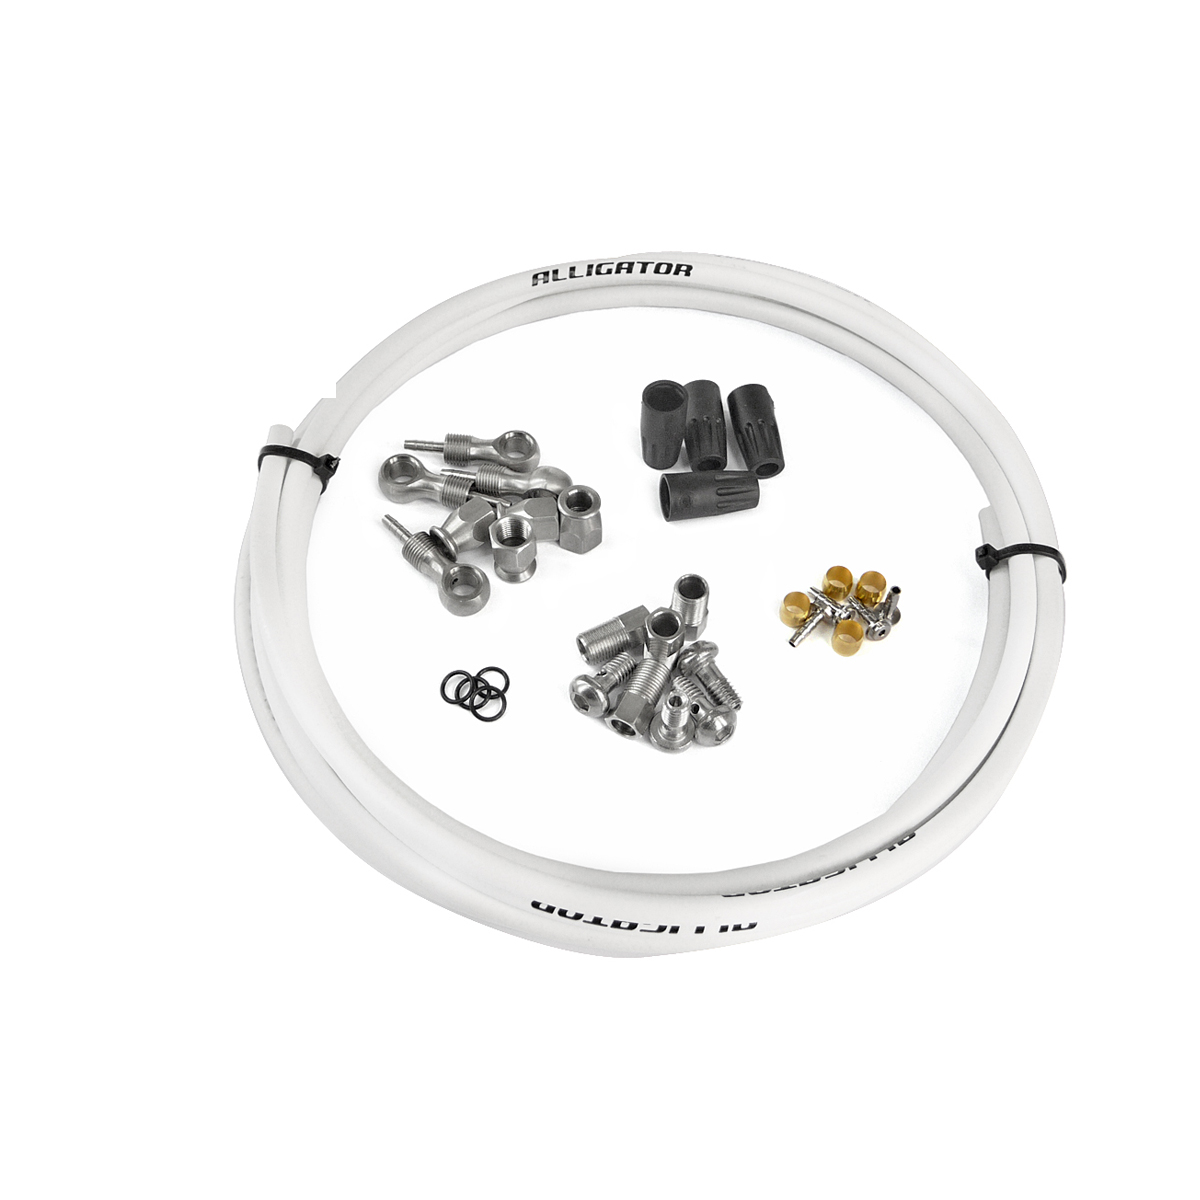 Kit complet durite frein hydraulique universel blanc